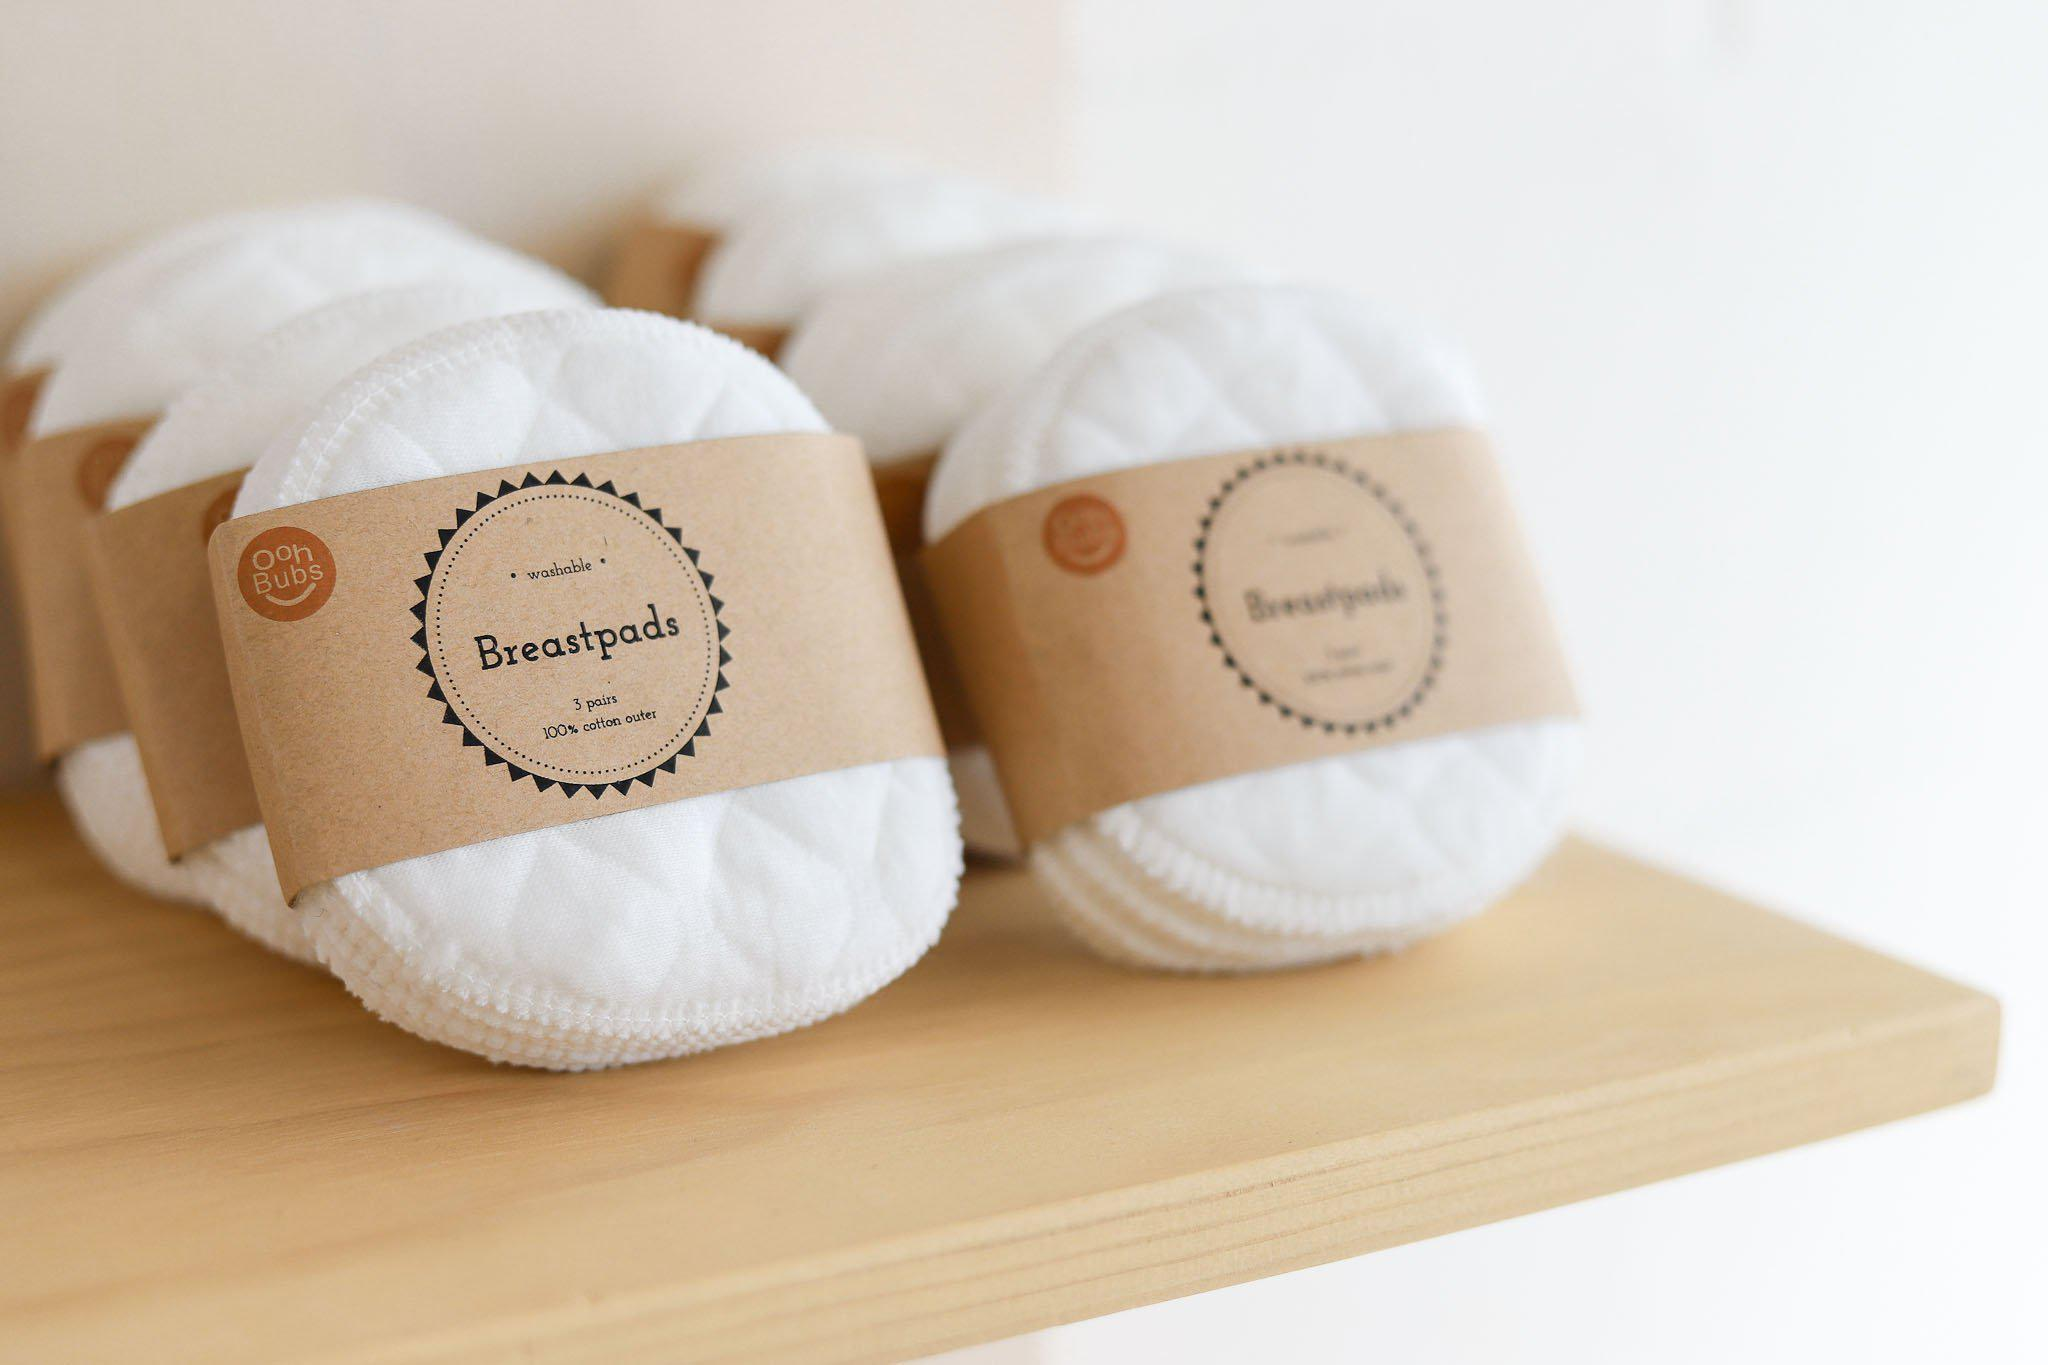 Oohbubs - Washable Breast Pads (3 Pairs)